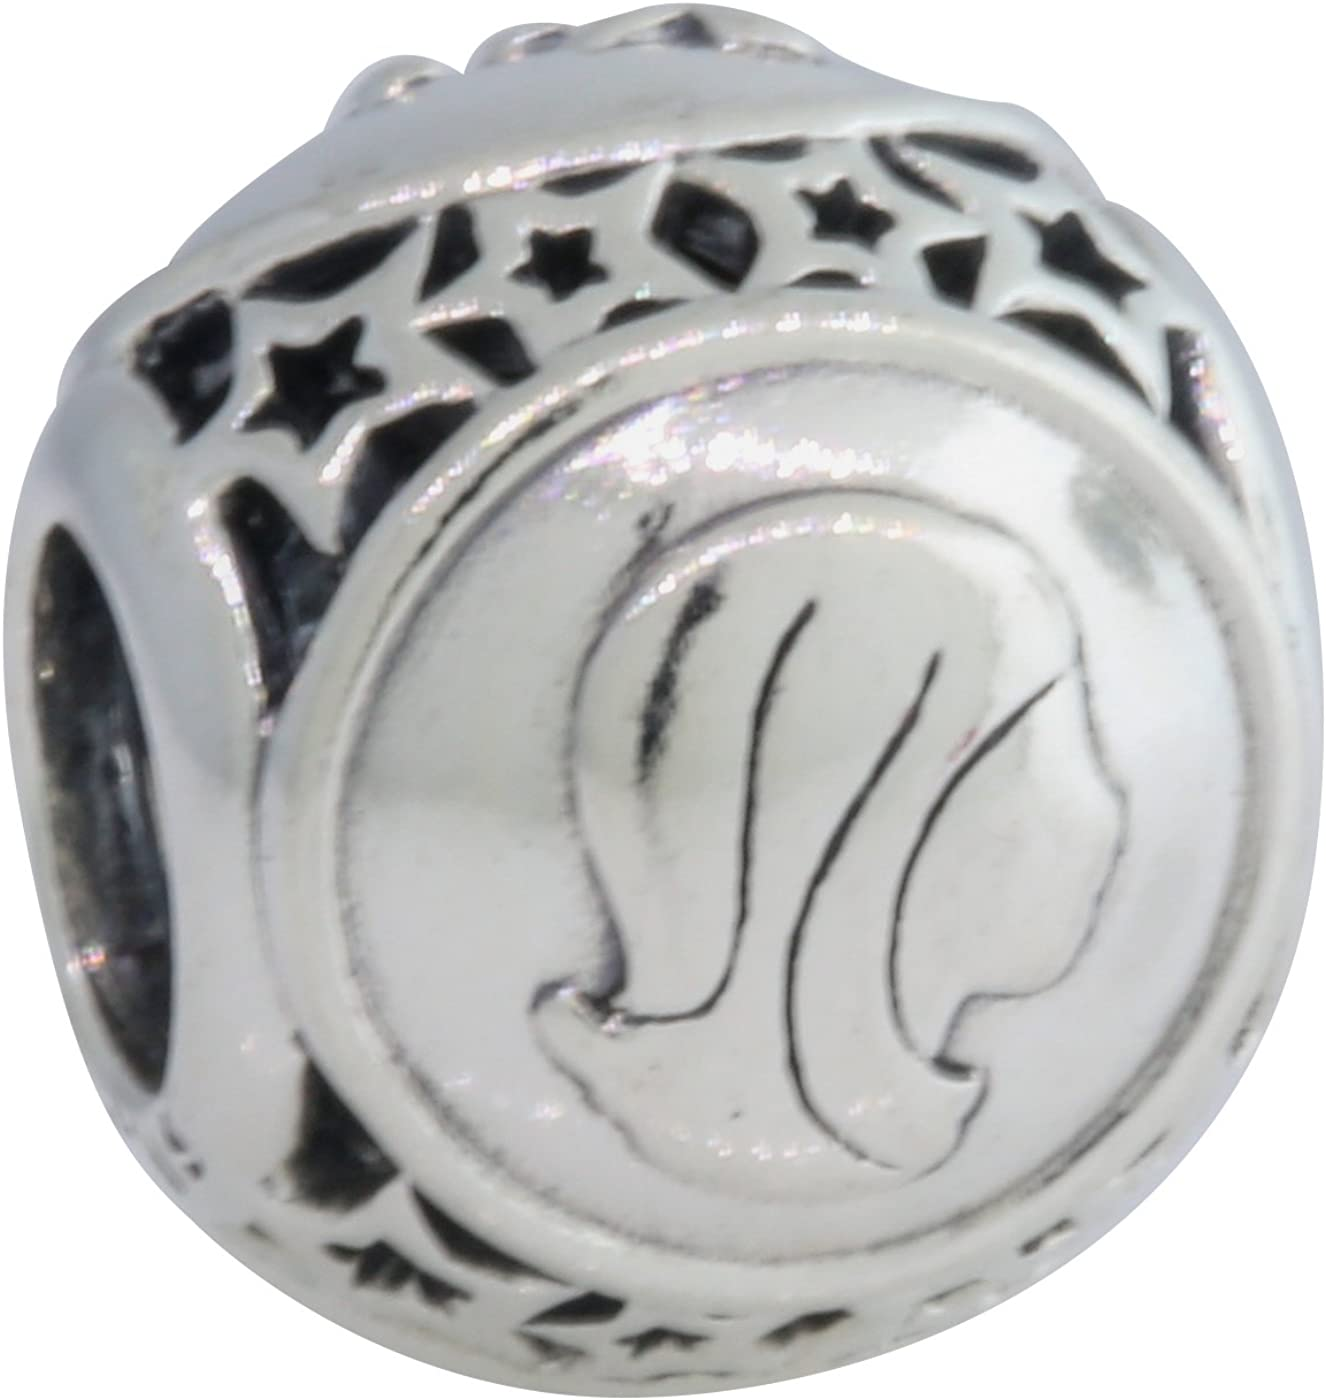 PANDORA Limited Special Price Max 70% OFF Charm 791941 Bead Sign Stars with Virgo